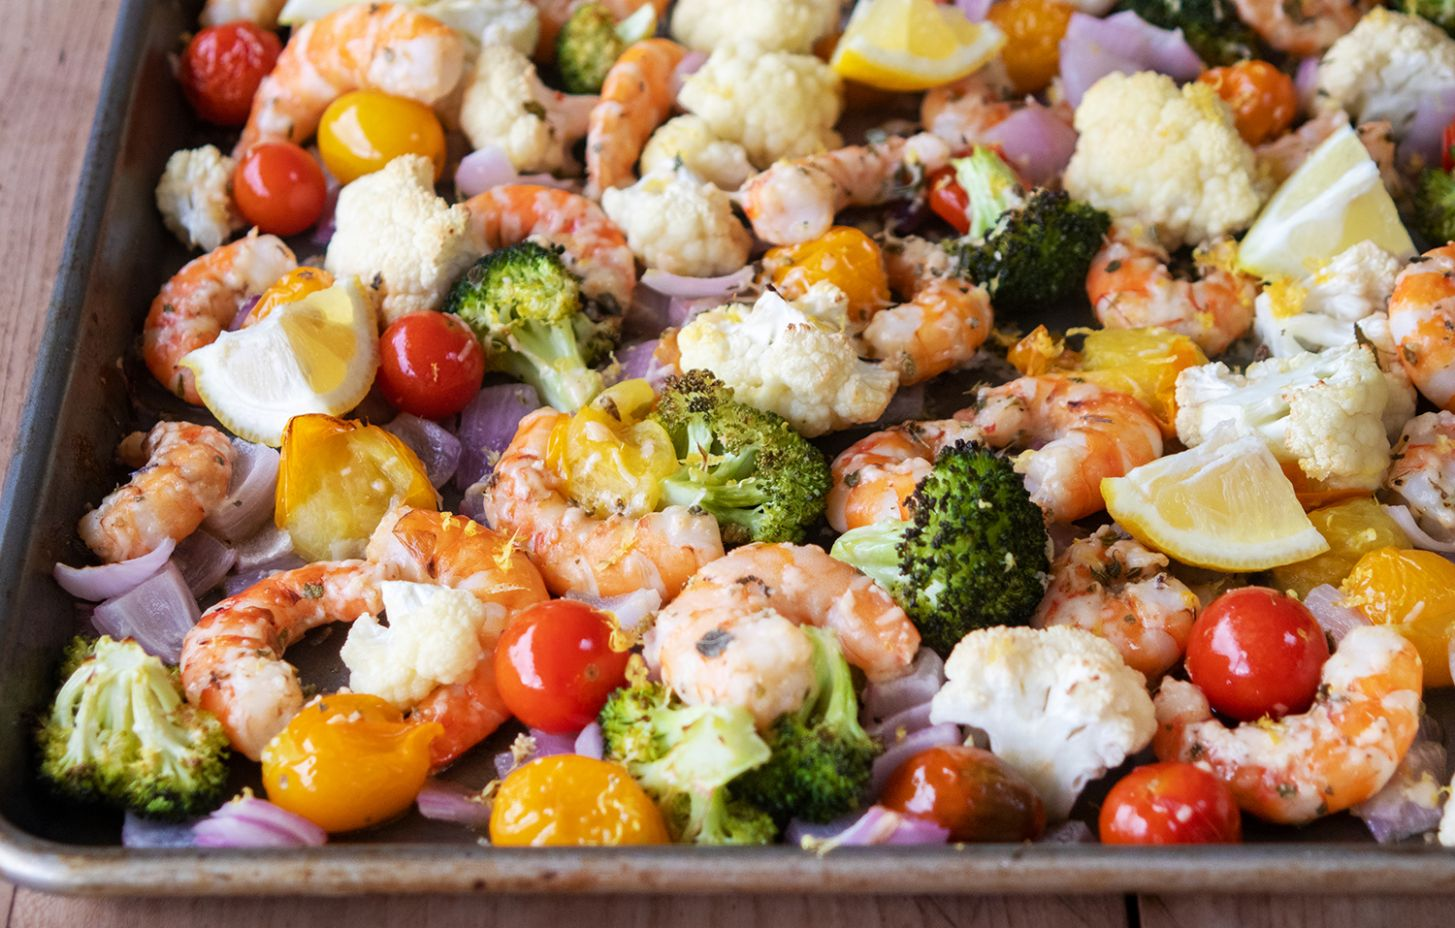 Sheet Pan Dinners To Make Cooking Easy This Summer | Giadzy - Summer Recipes Giada